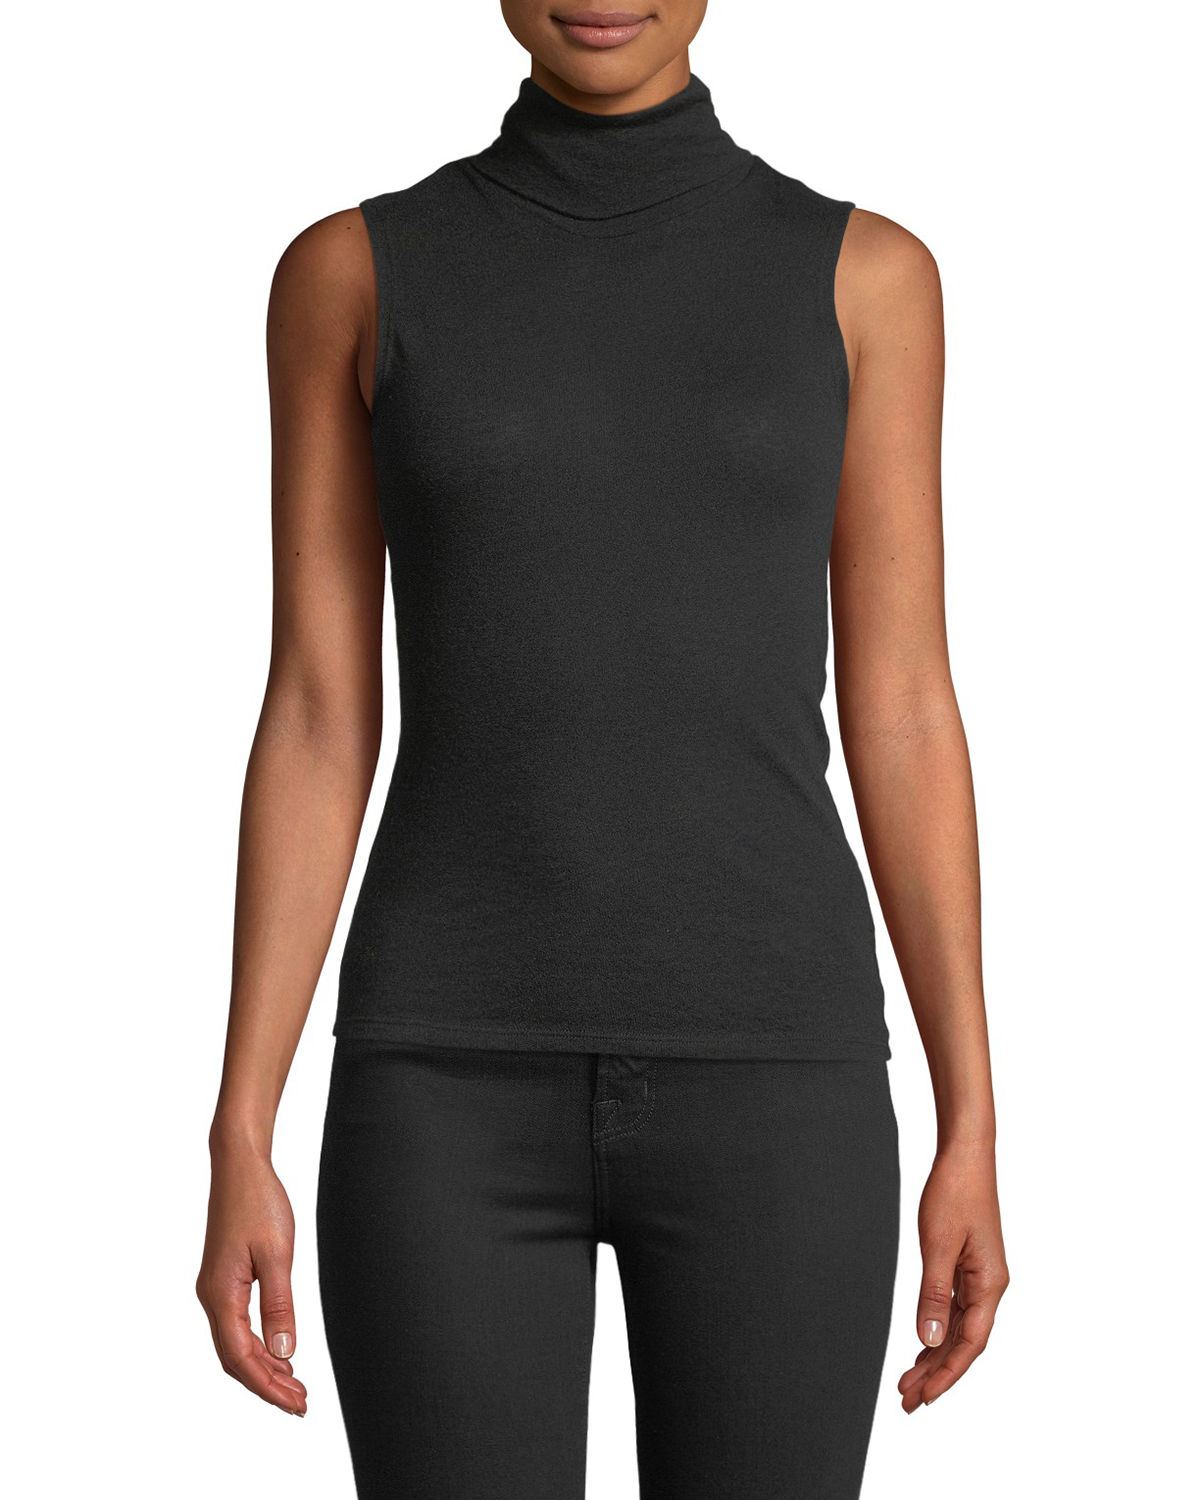 Majestic CASHMERE SLEEVELESS TURTLENECK TOP